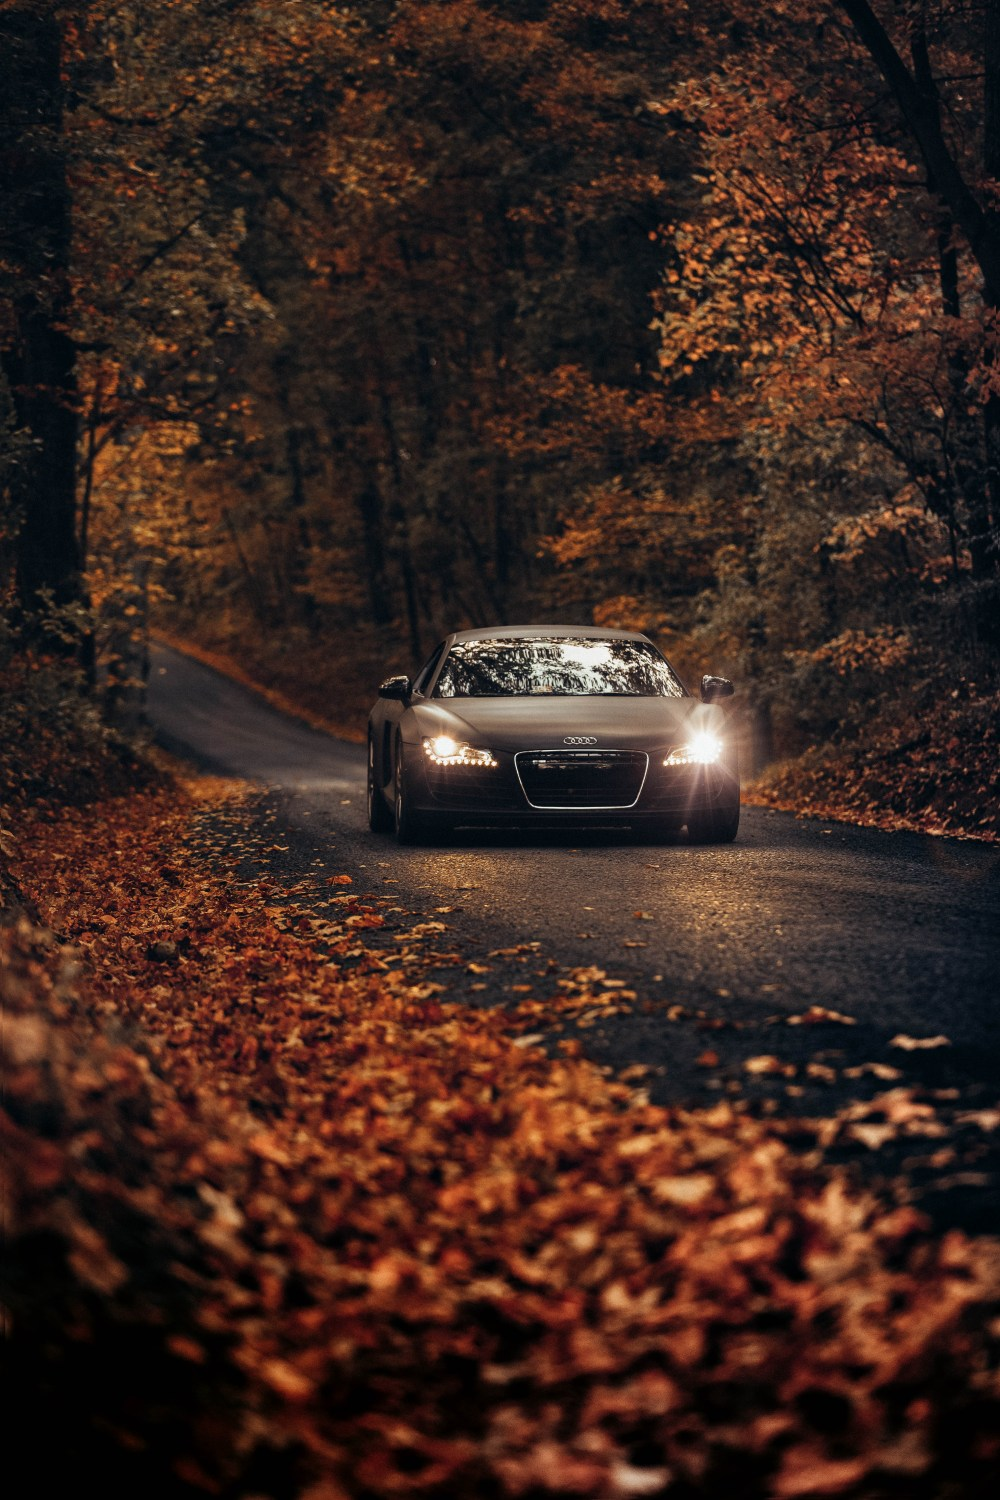 Join 425,000 subscribers and get. Car Wallpapers Iphone 11 1000x1500 Wallpaper Teahub Io